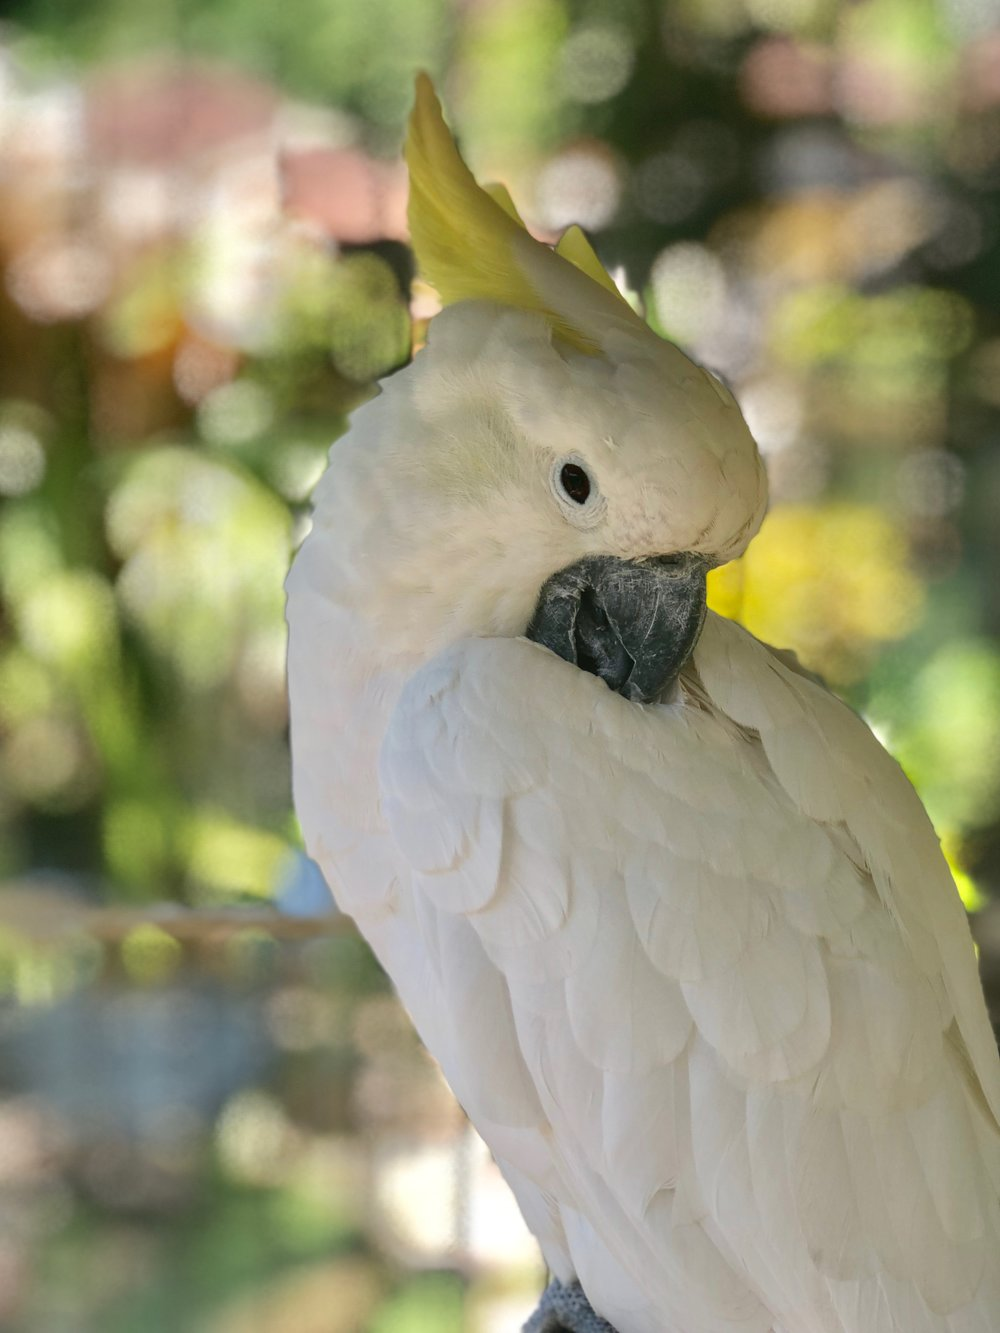 A striking cockatoo with a sulphur-yellow crest